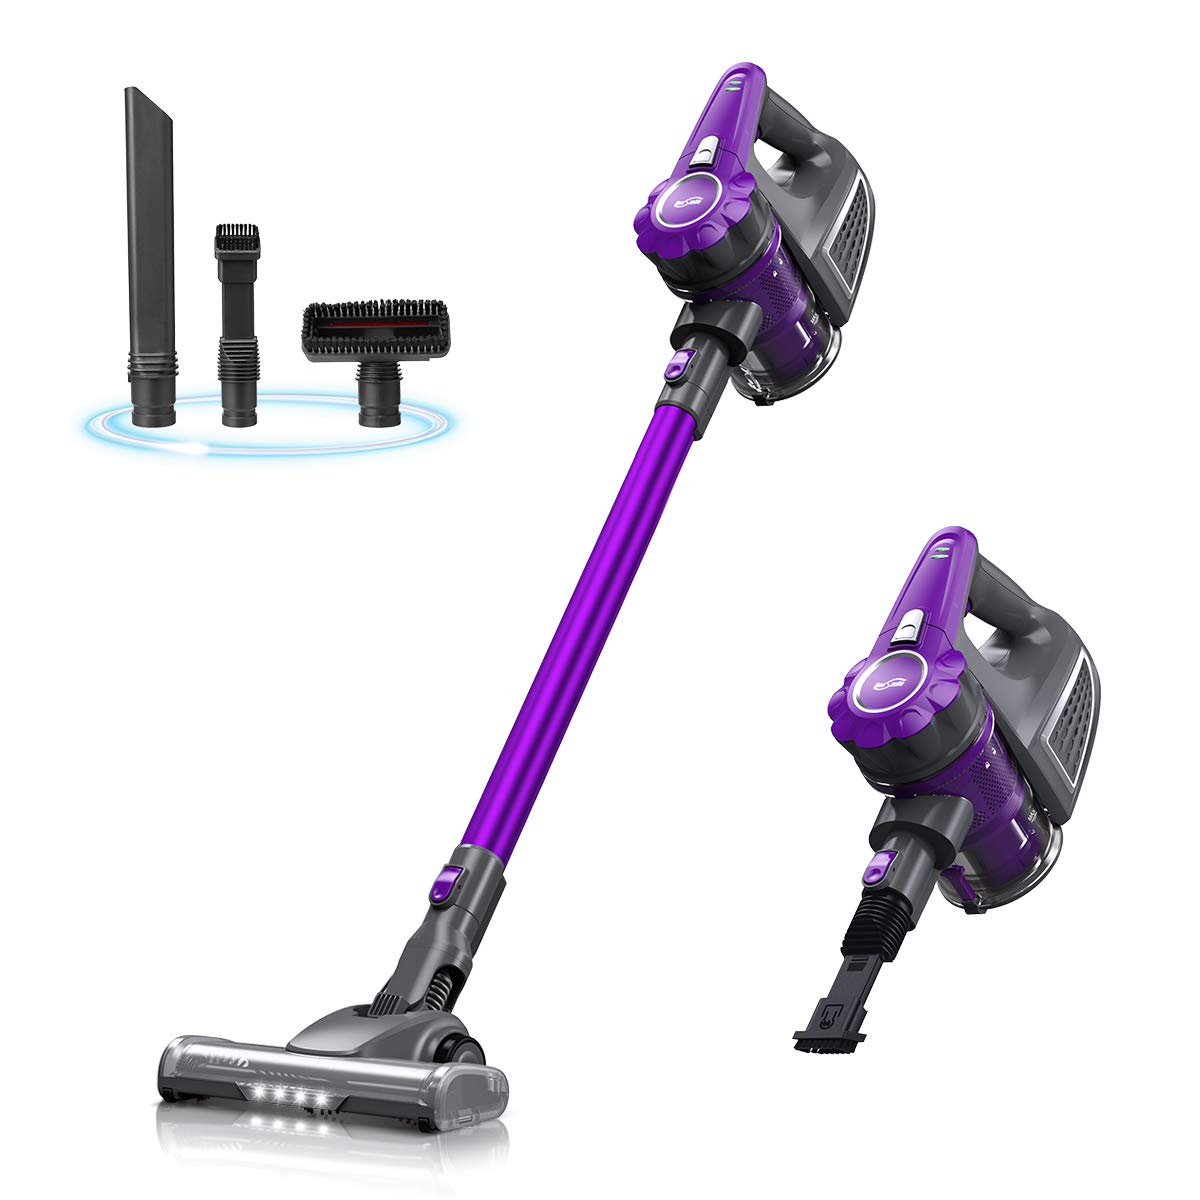 Housmile Cordless Vacuum Cleaner, 4 in 1 Handheld Vacuum, Rechargeable Stick Vacuum with LED Brush for Home and Car Cleaning, Purple by Housmile